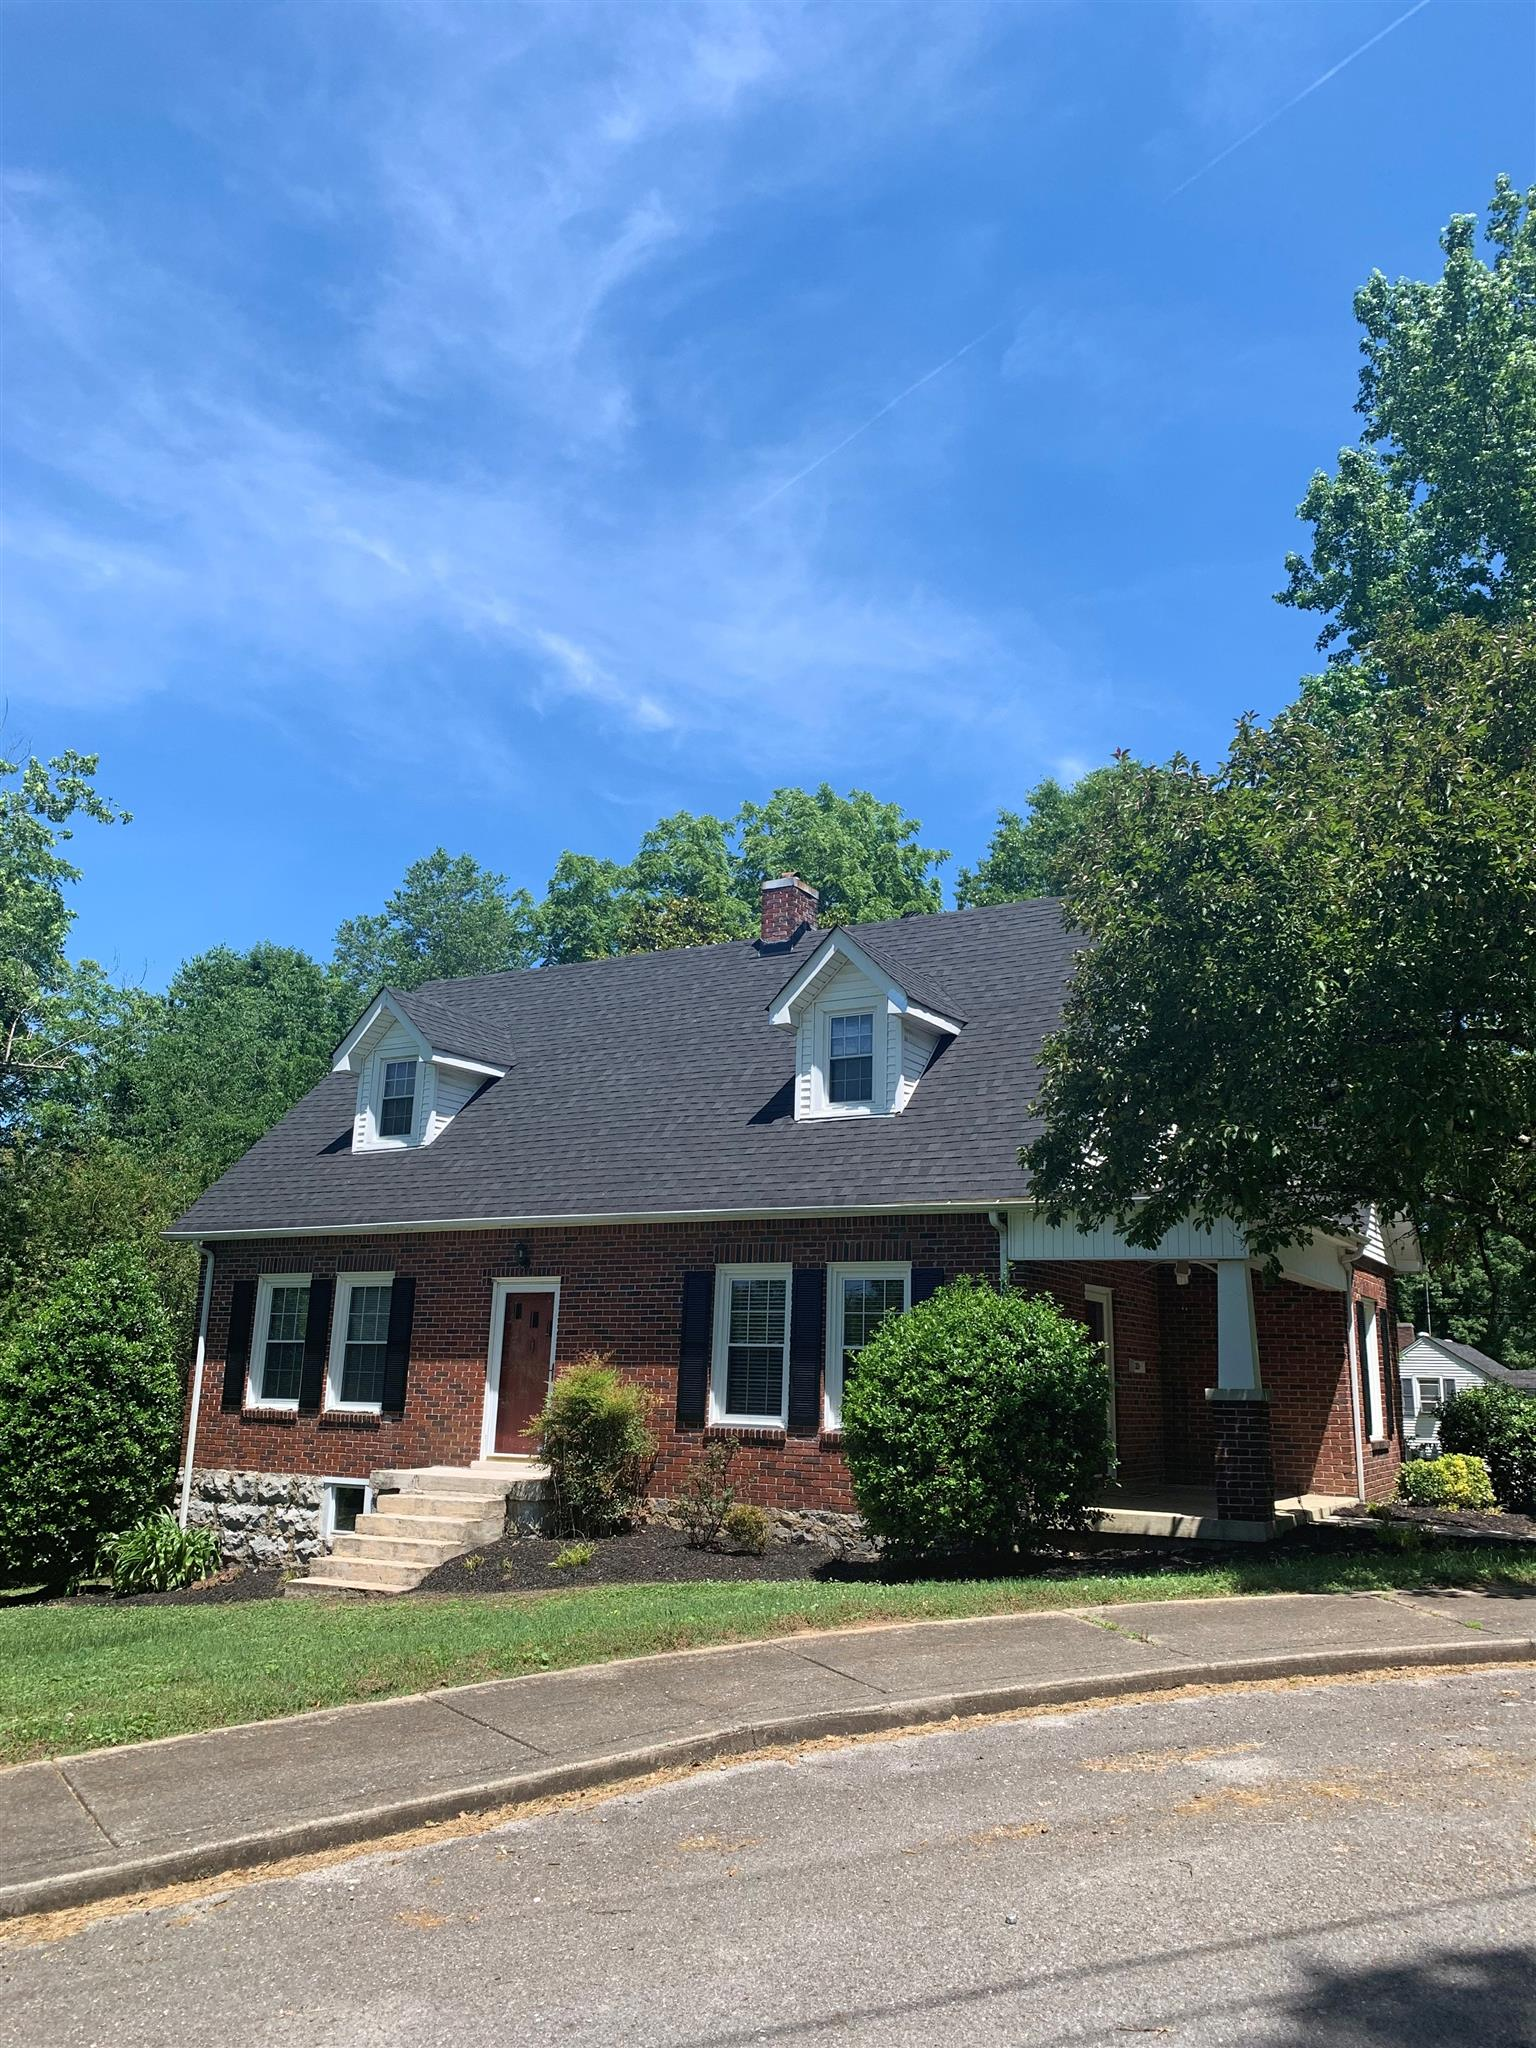 301 Cullum St, Carthage, TN 37030 - Carthage, TN real estate listing